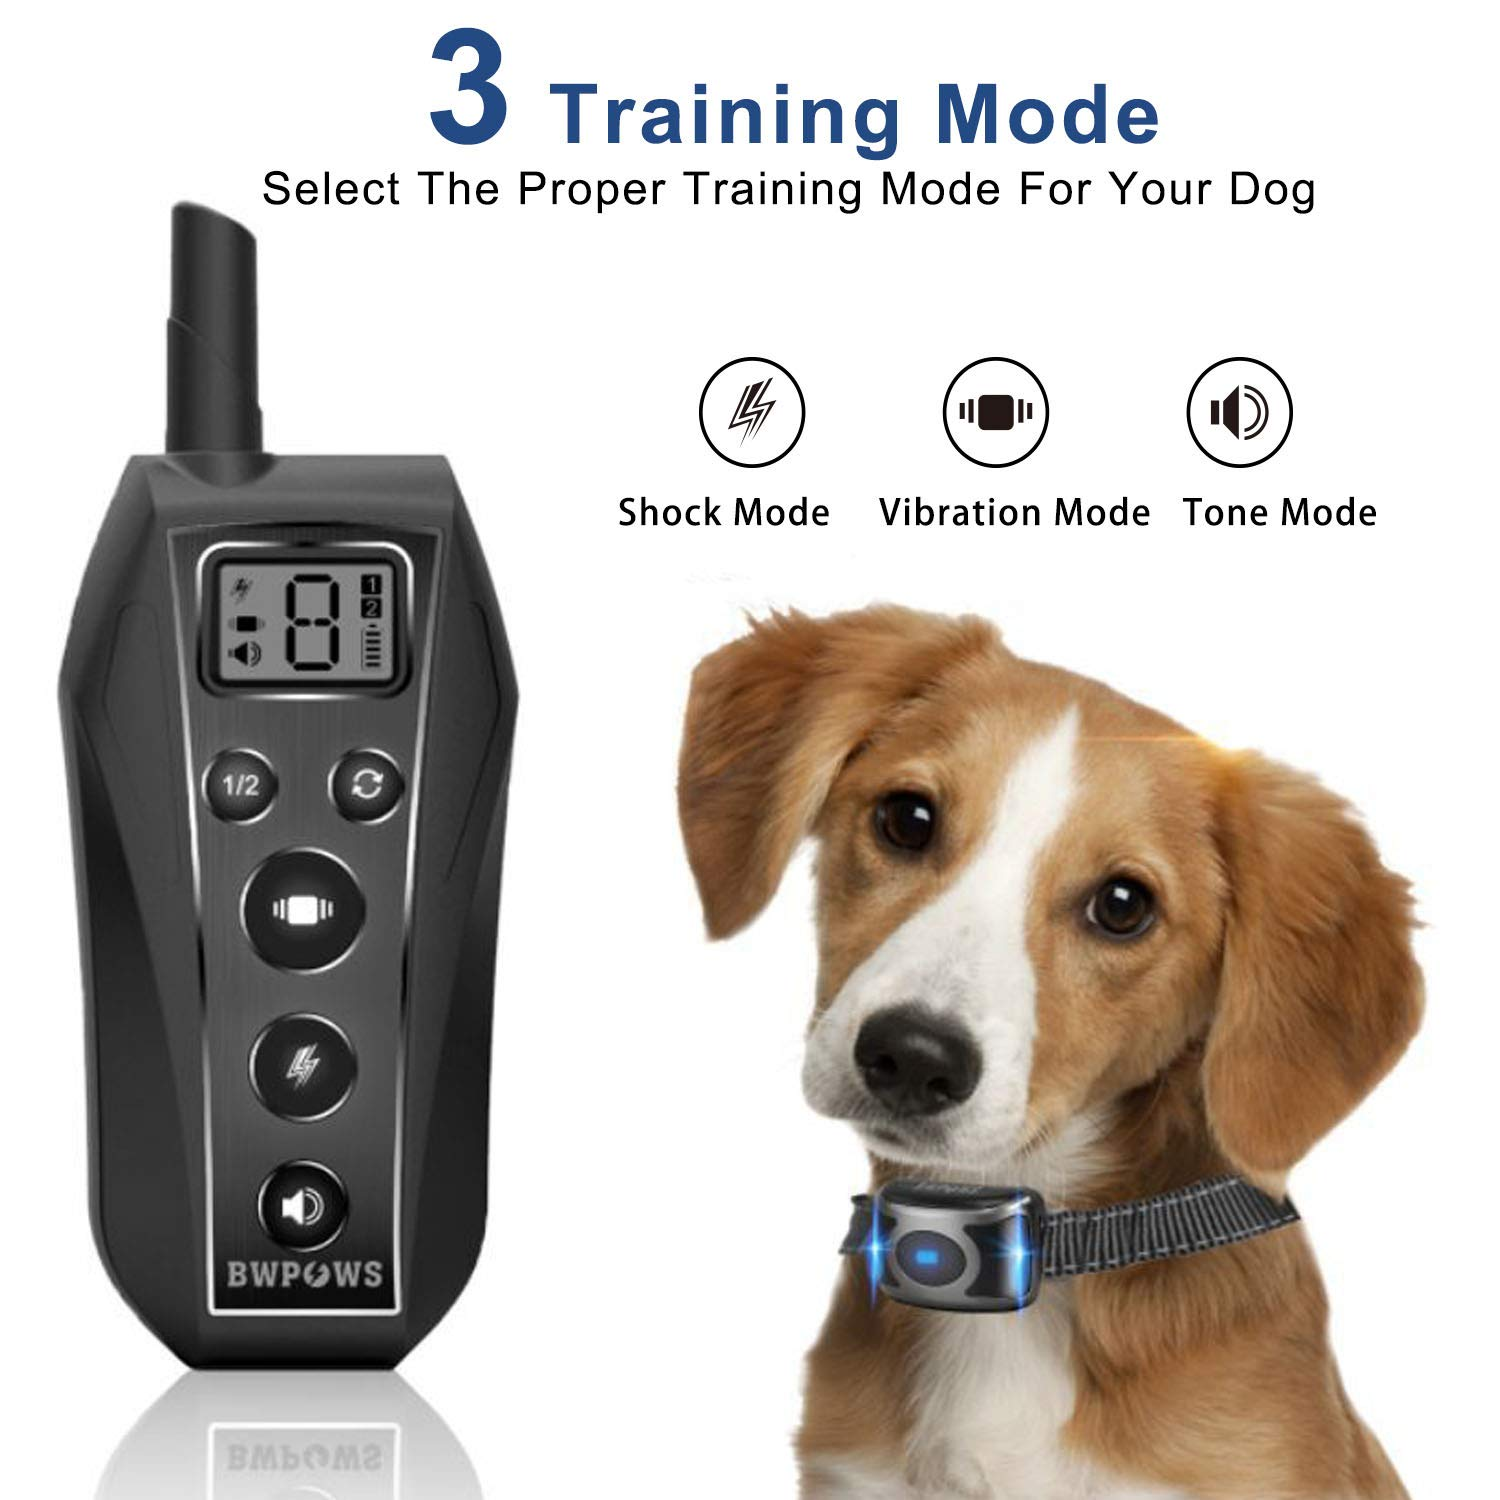 Bwpows Dog Training Collar with 3 Training Modes-Beep Vibration Shock,up to 1968Ft Long Range Remote Control,100 Waterproof Dog Shock Collar for for Small, Medium, Large Dogs,2019 Newest Design